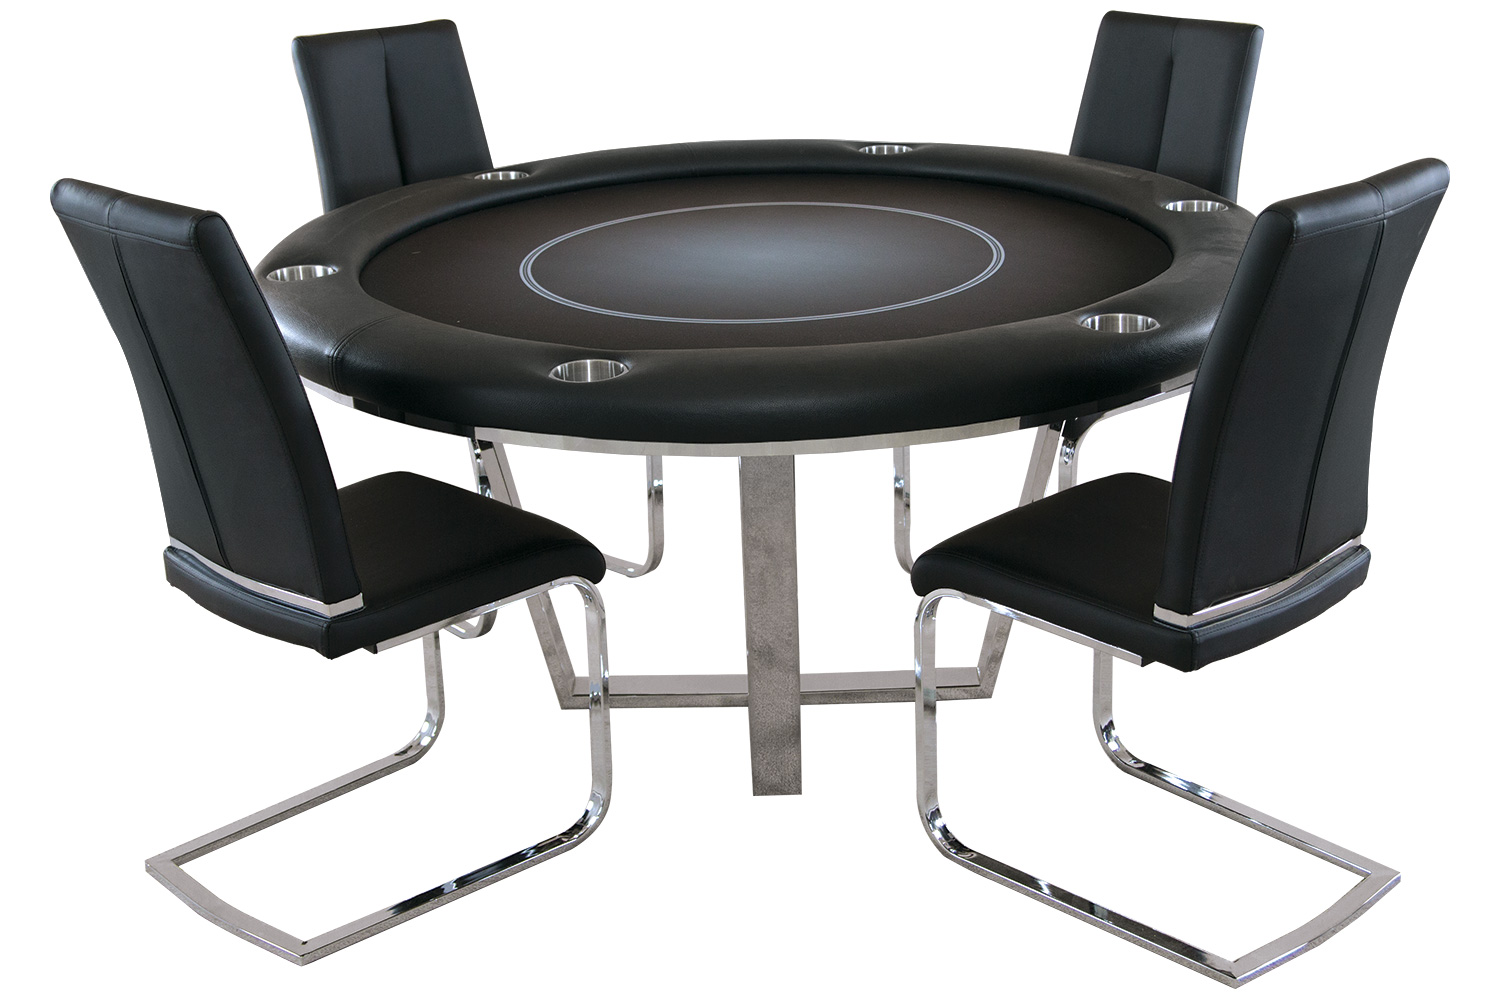 Manetho Round Poker Table with 4 matching chairs